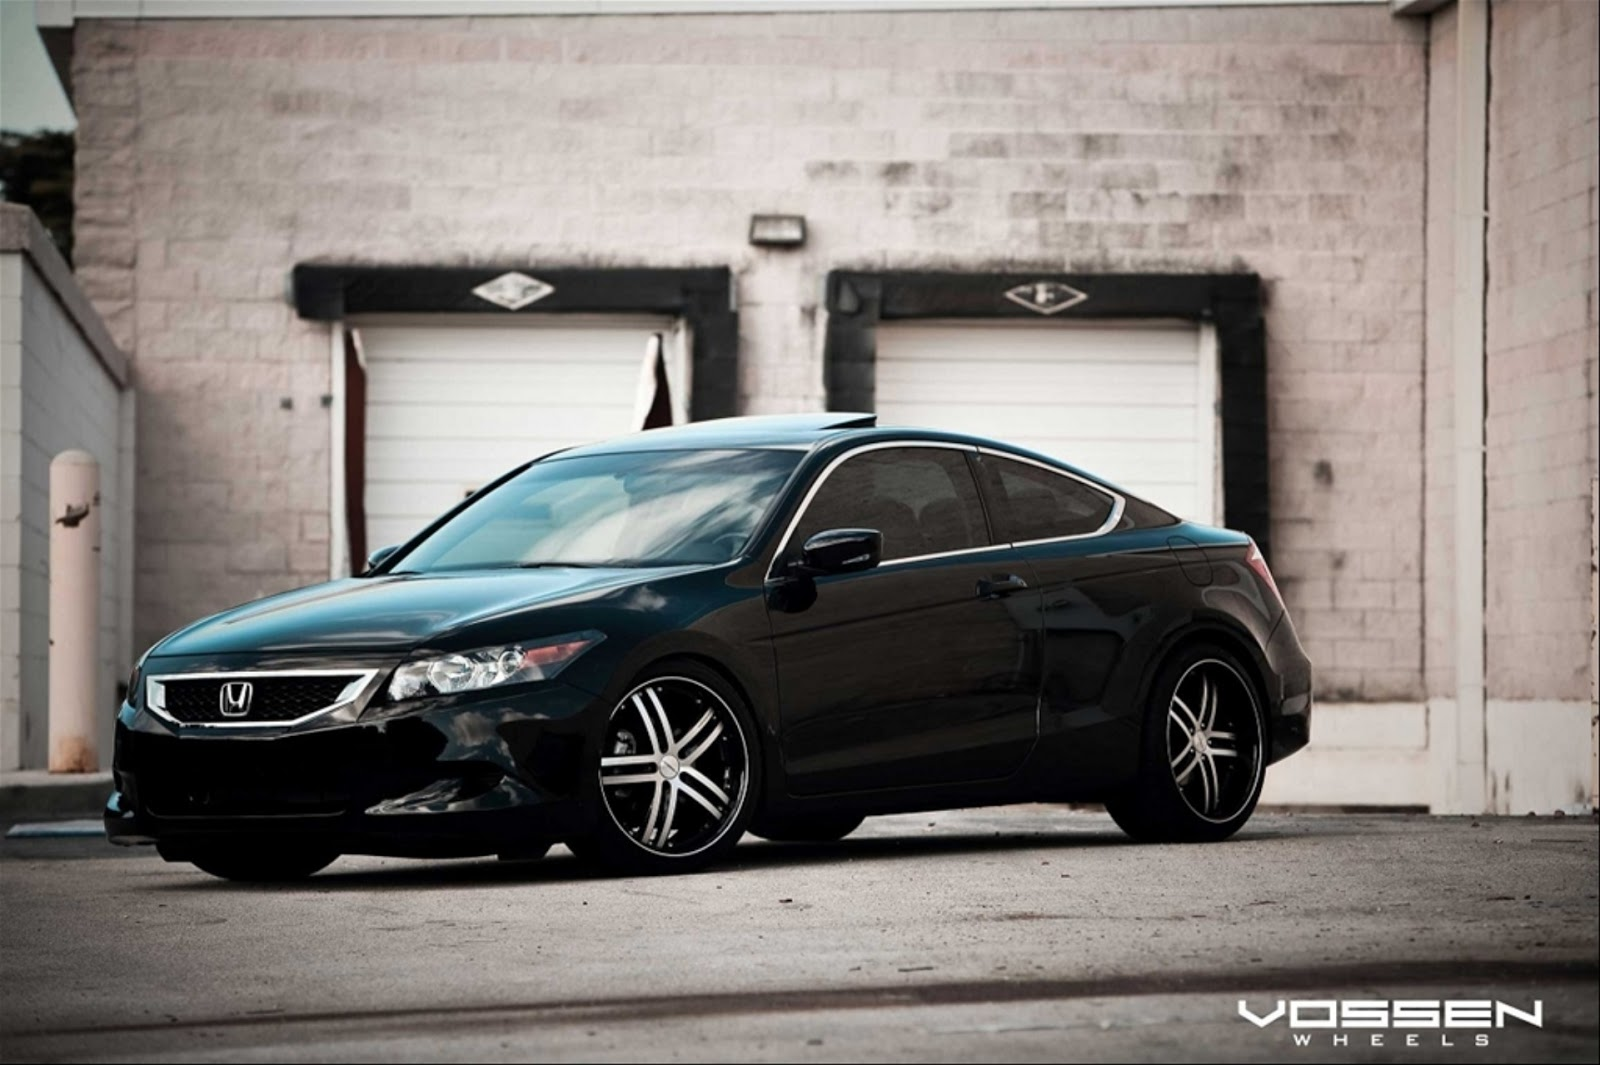 all tuning cars nz honda accord ex l coupe 2010. Black Bedroom Furniture Sets. Home Design Ideas